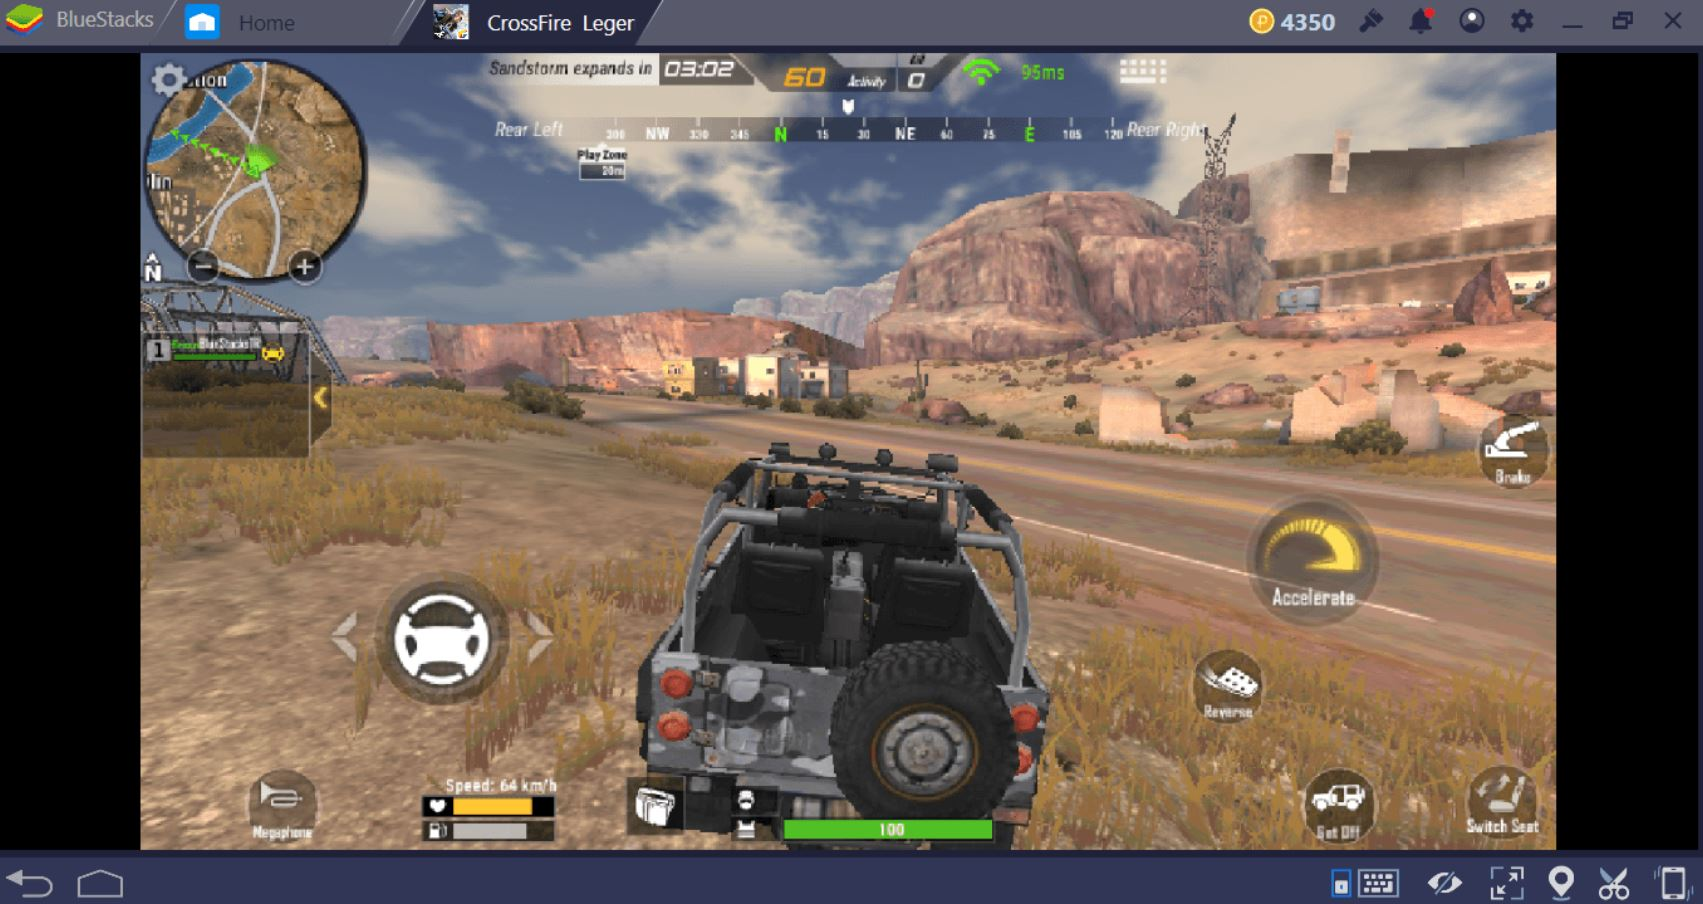 Play Games on Bluestacks